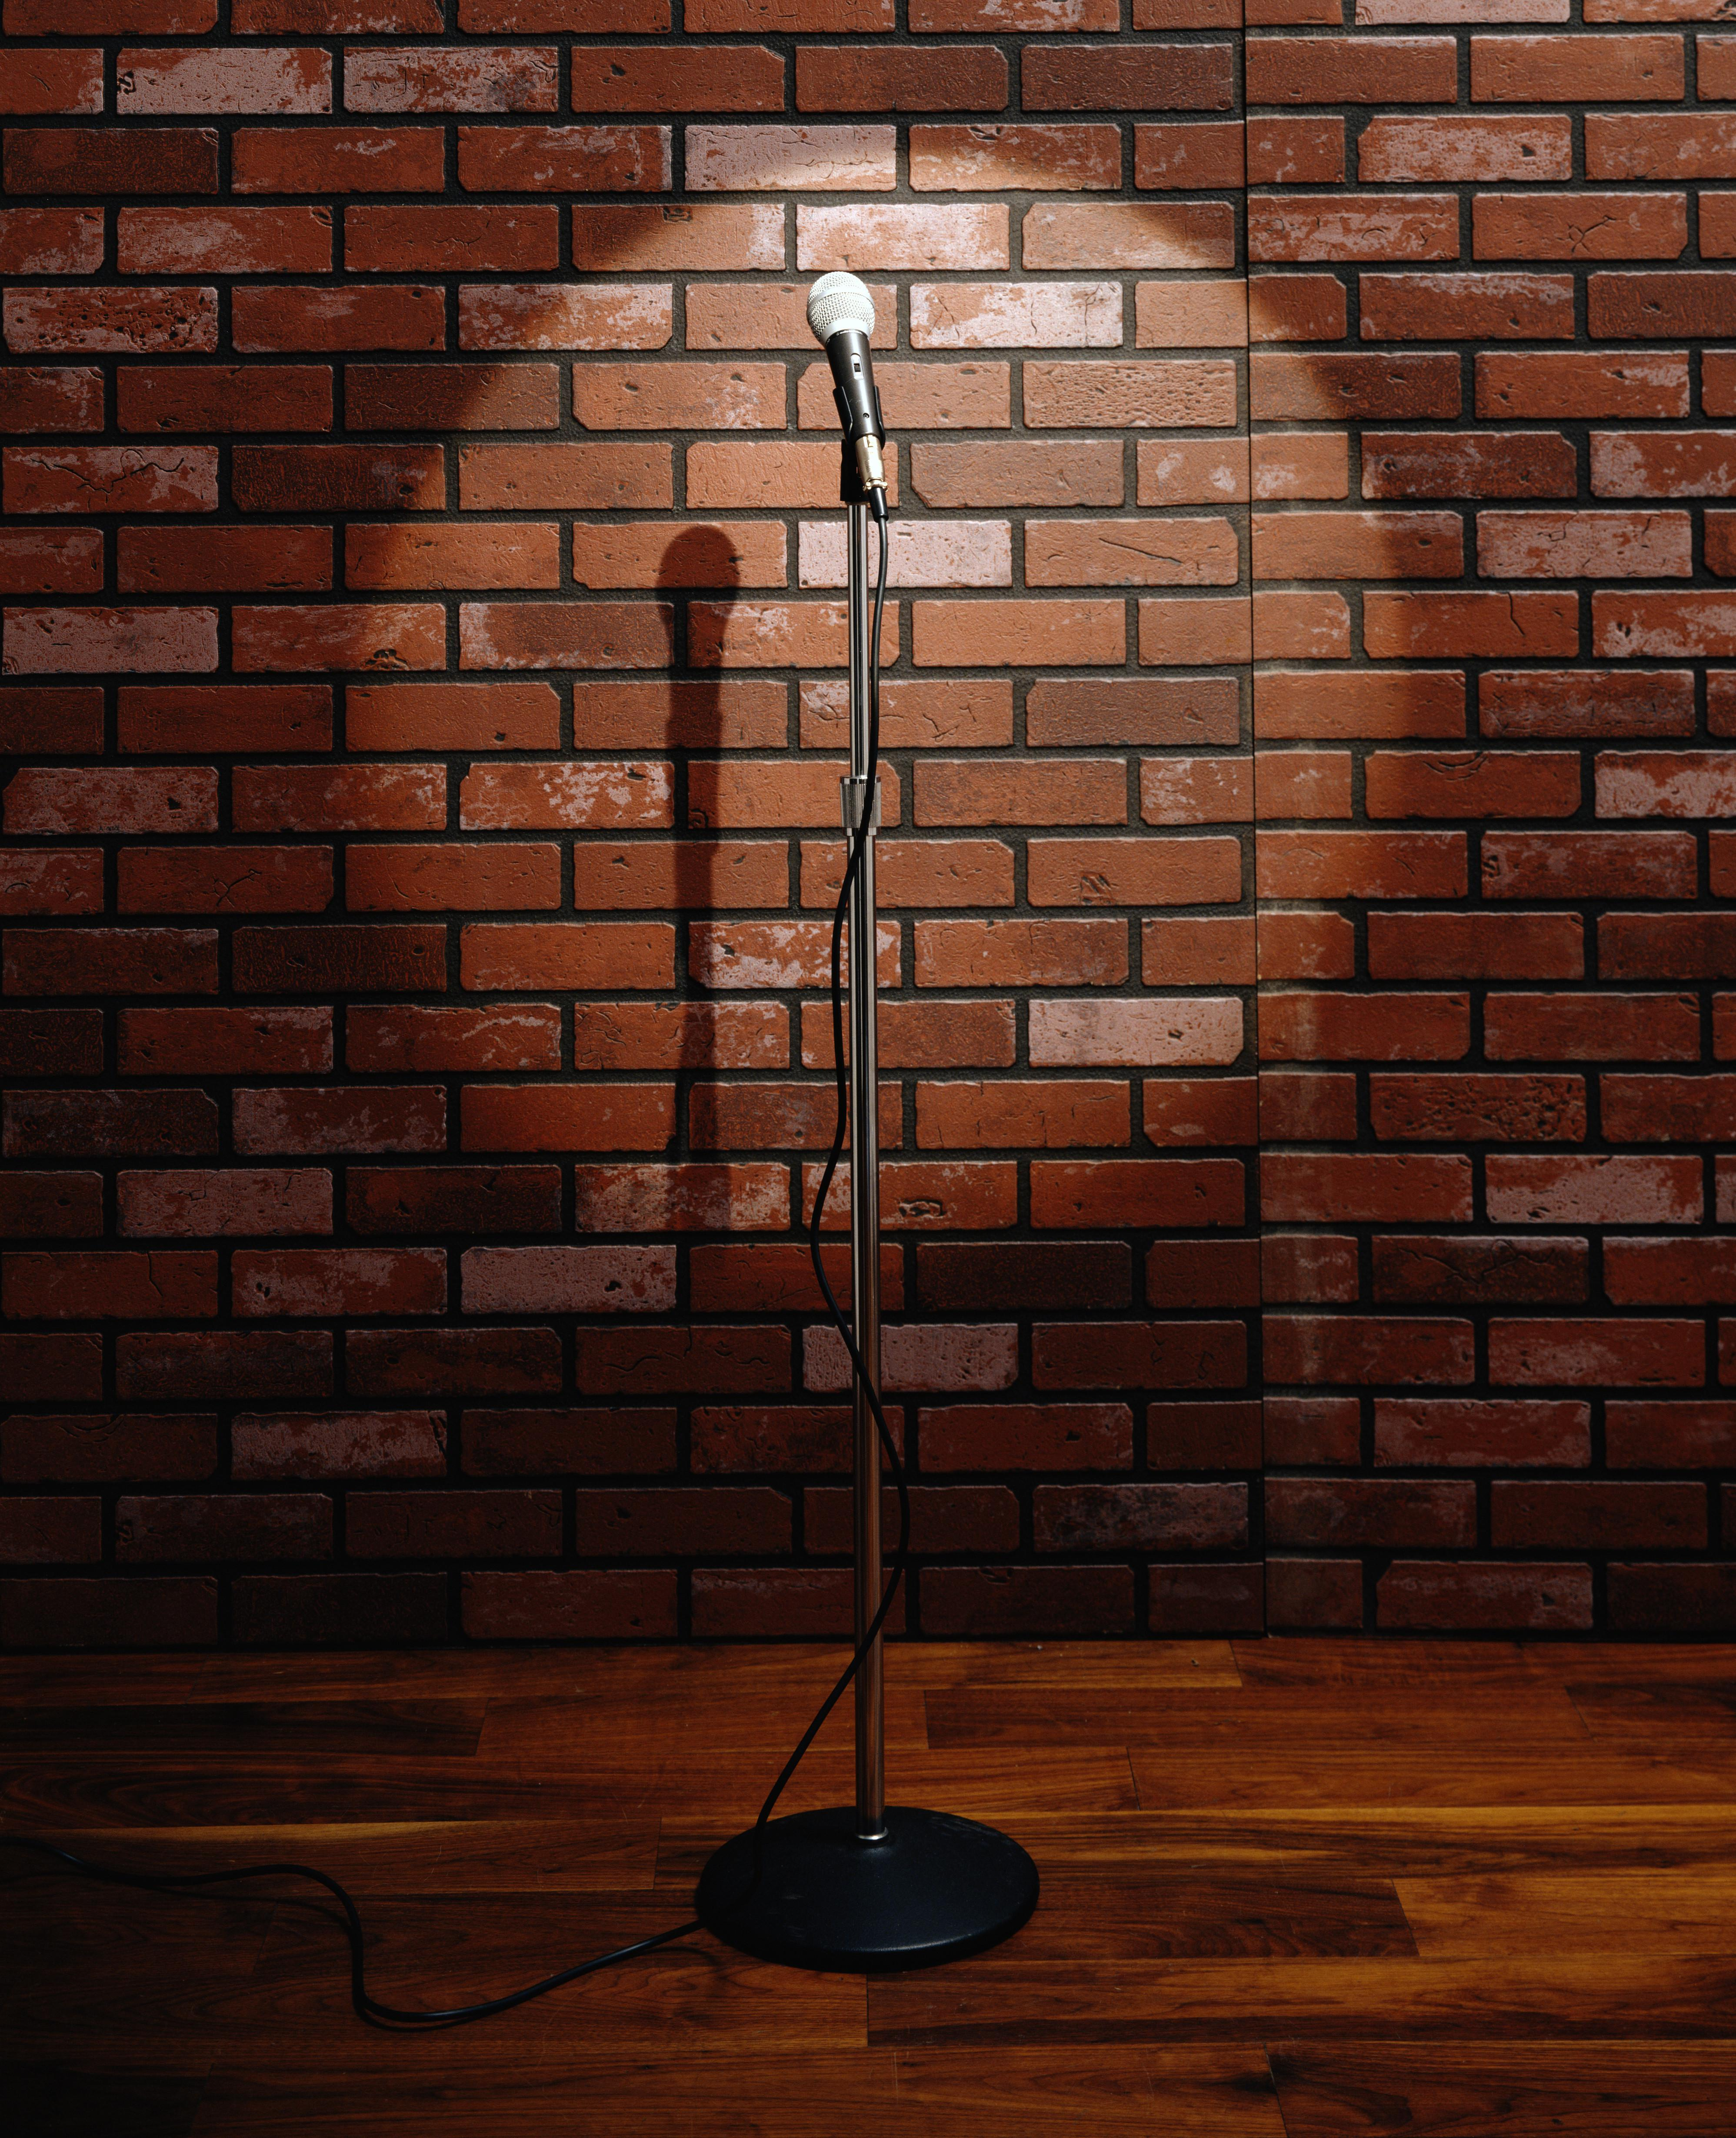 Microphone on stand in front of brick wall